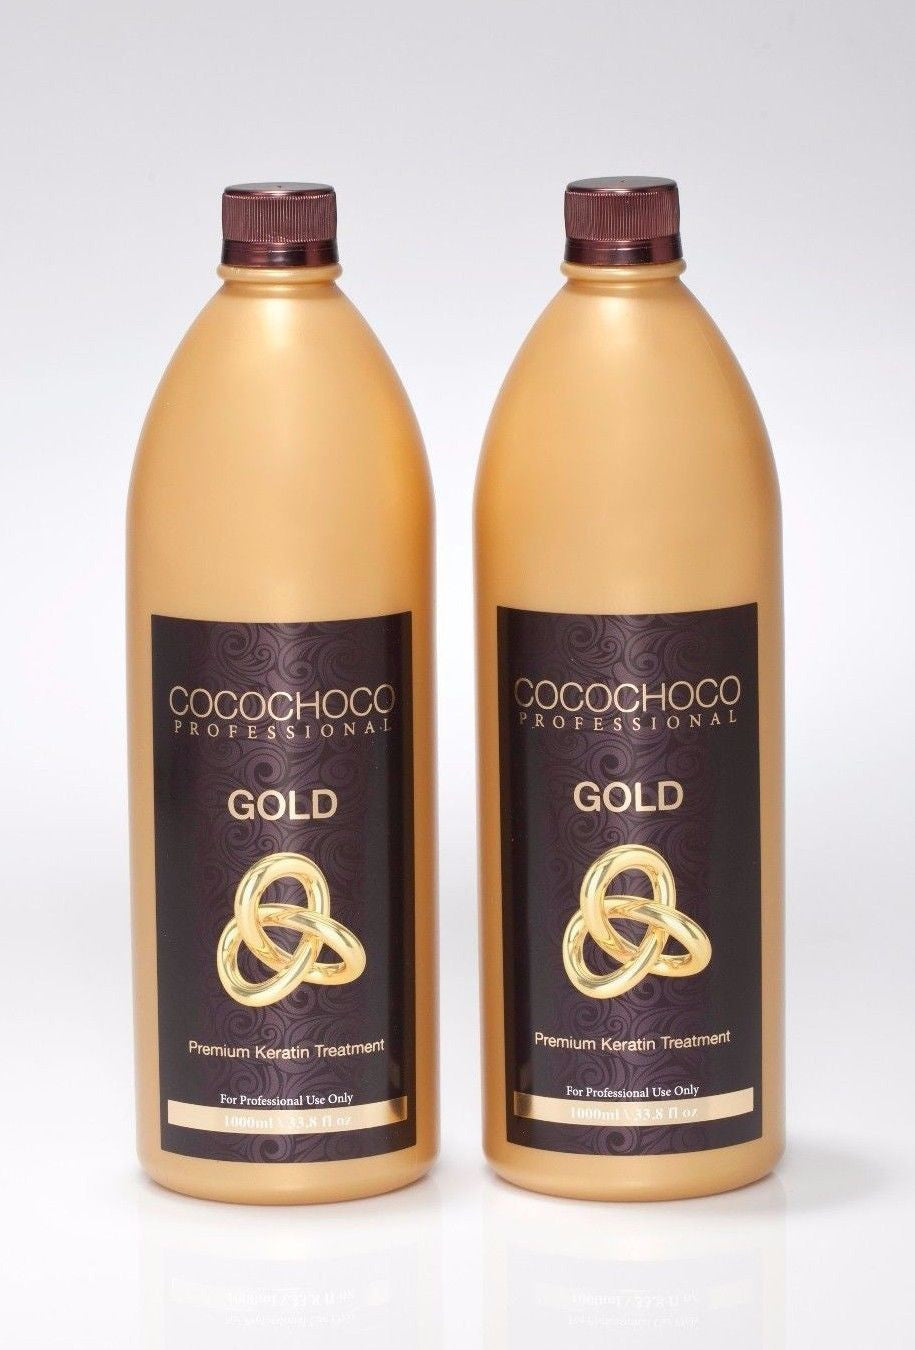 COCOCHOCO PROFESSIONAL GOLD 1000ml x 2